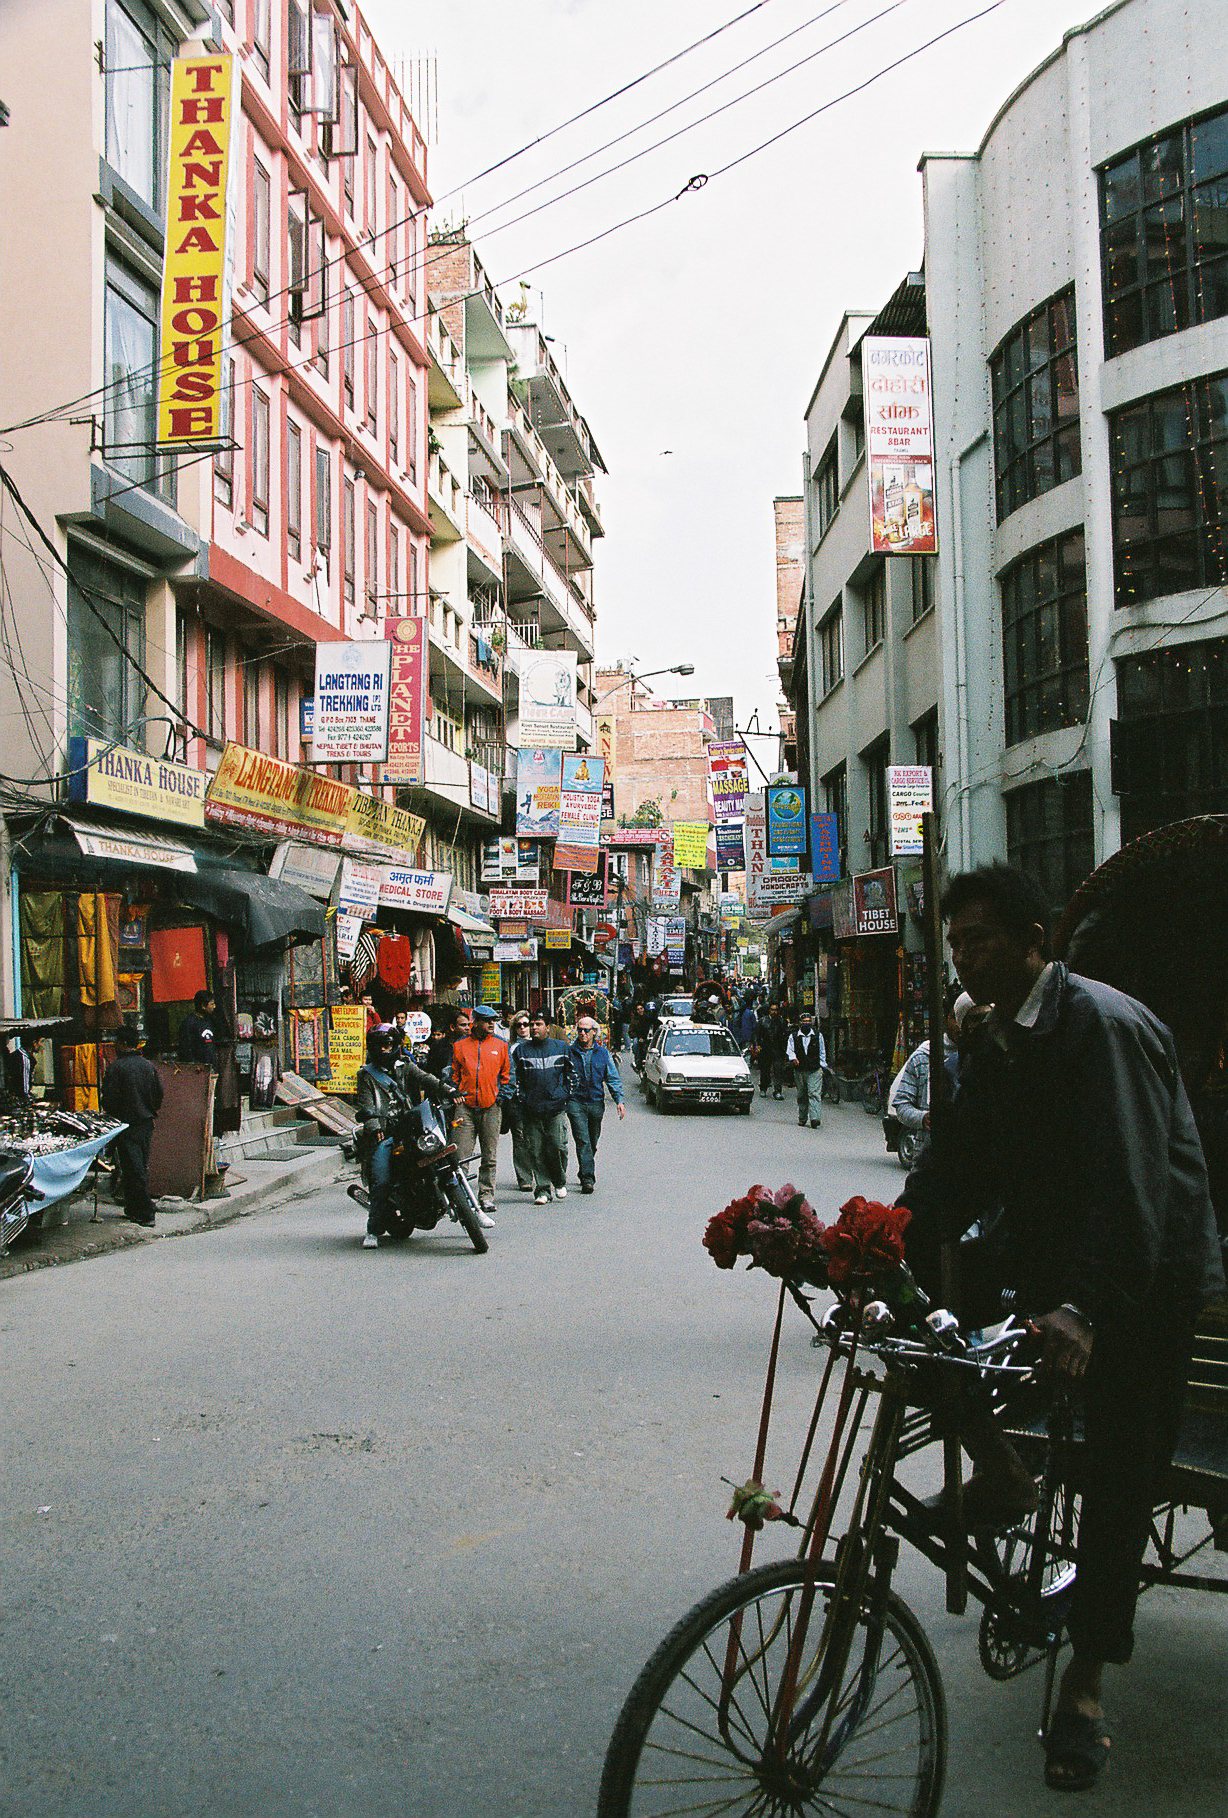 The busy streets of Thamel outside the Kathmandu Guest House